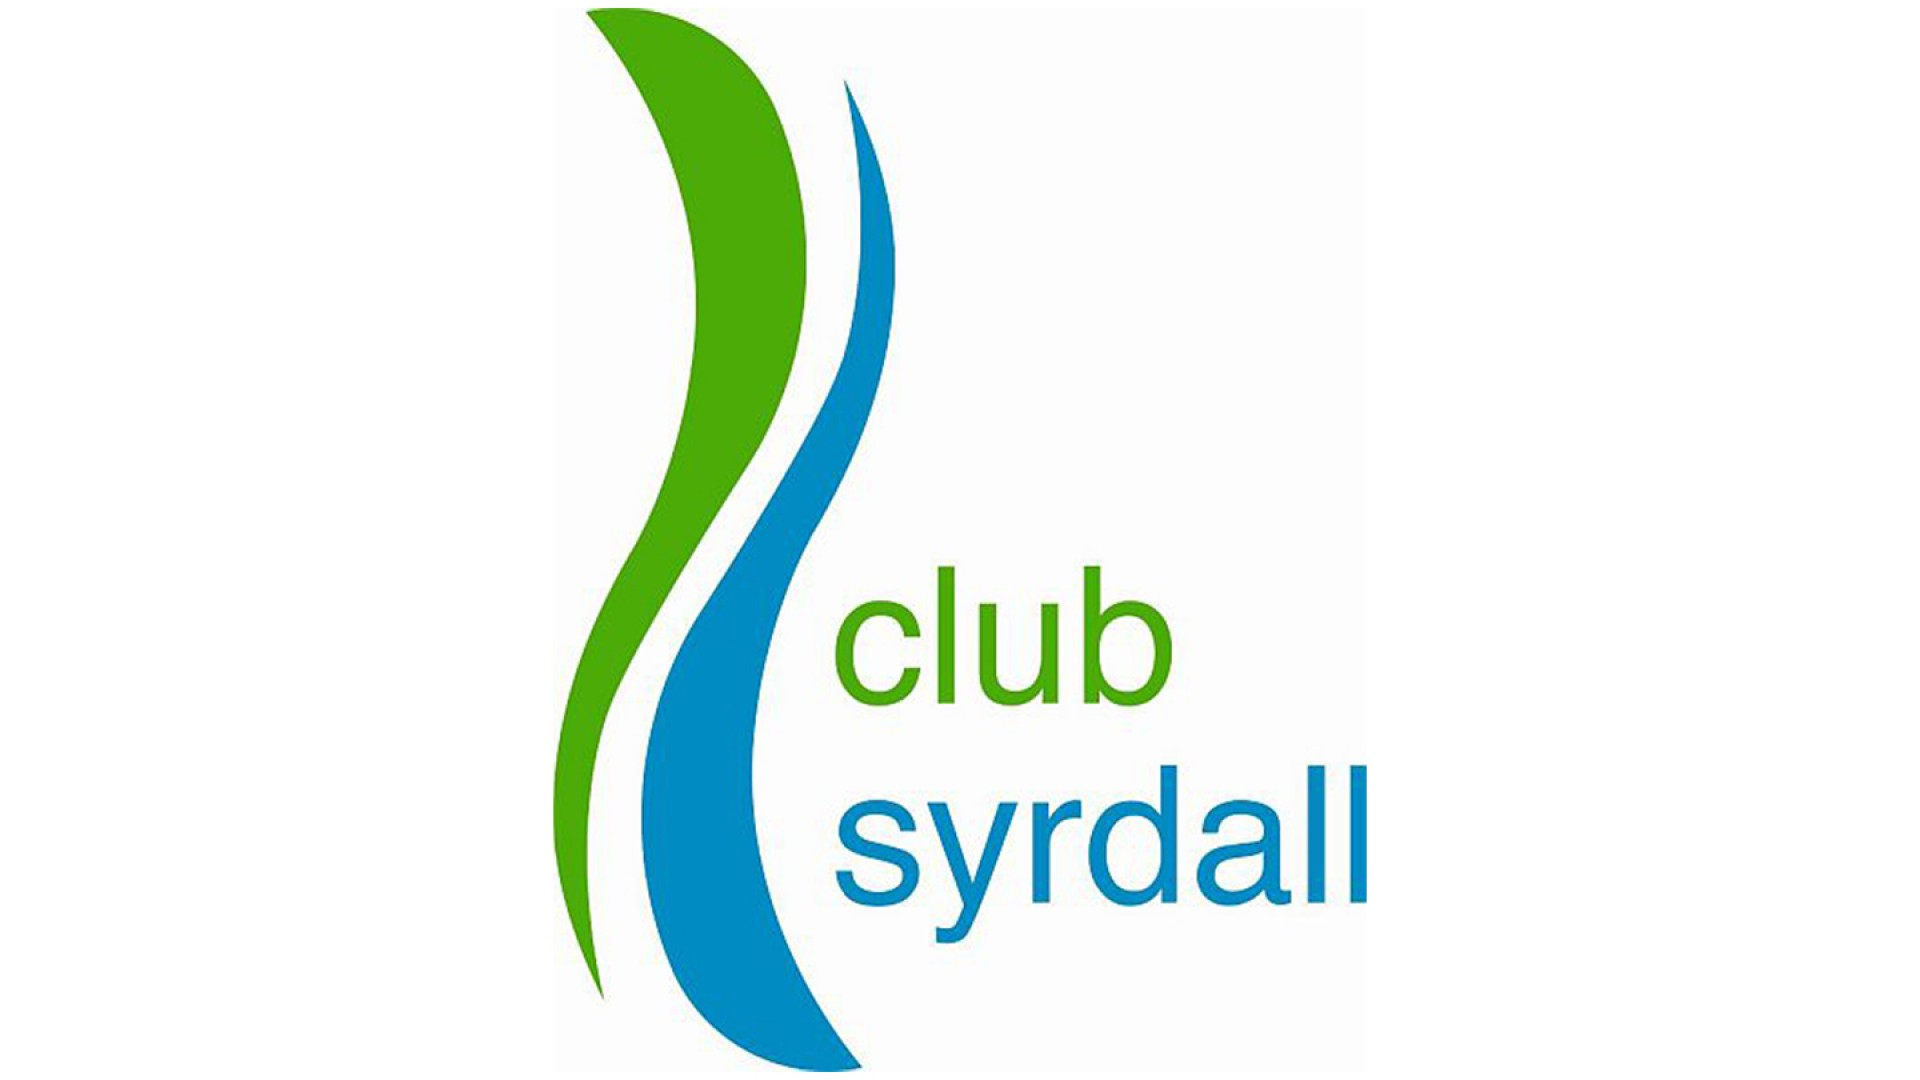 club-syrdall-logo